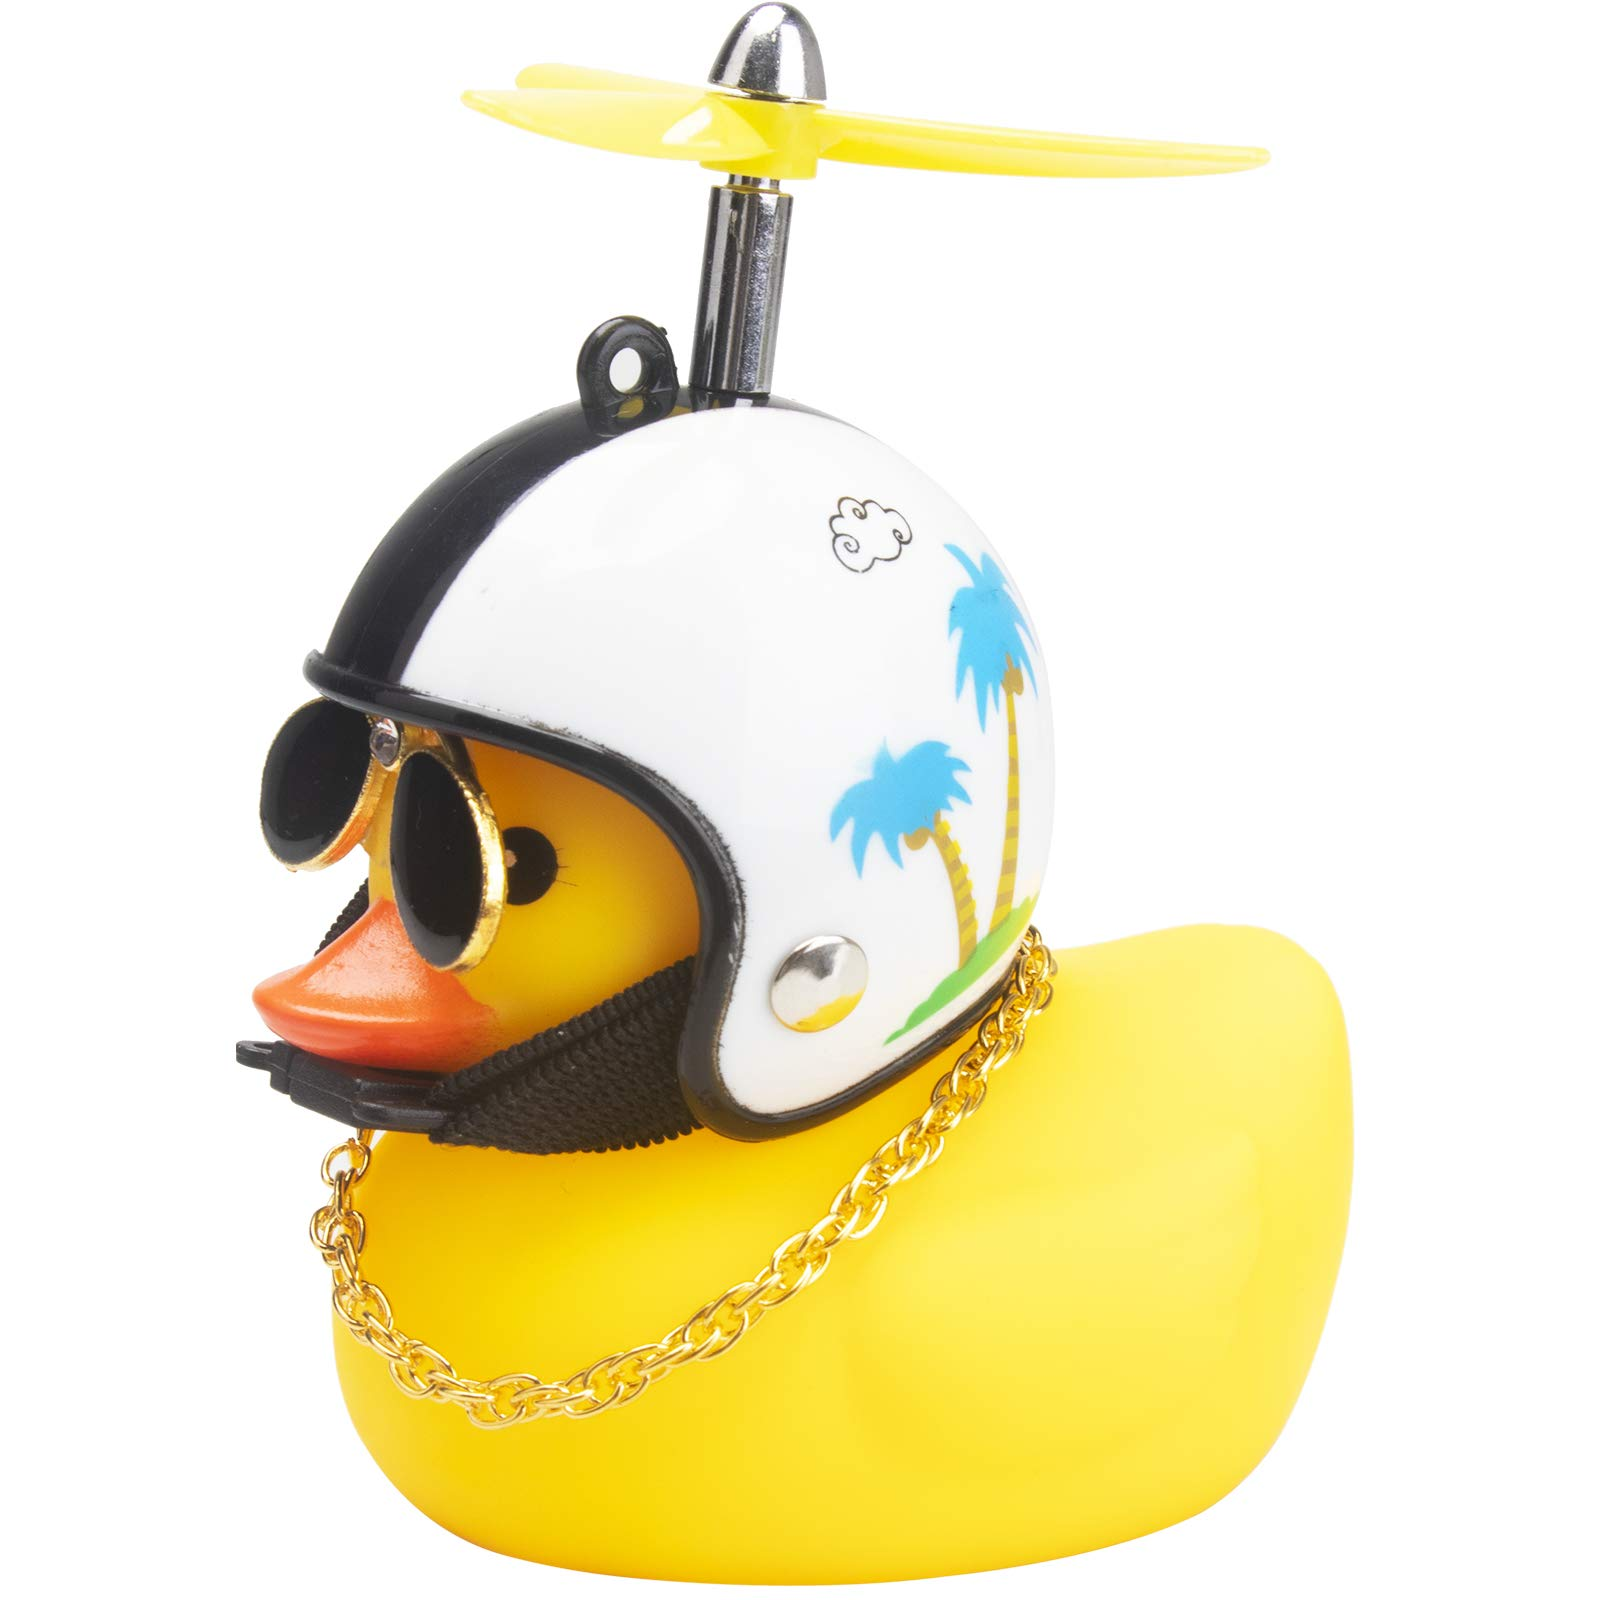 wonuu Rubber Duck Toy Car Ornaments Yellow Duck Car Dashboard Decorations Cool Glasses Duck with Propeller Helmet (Coconut Tree-Yellow)